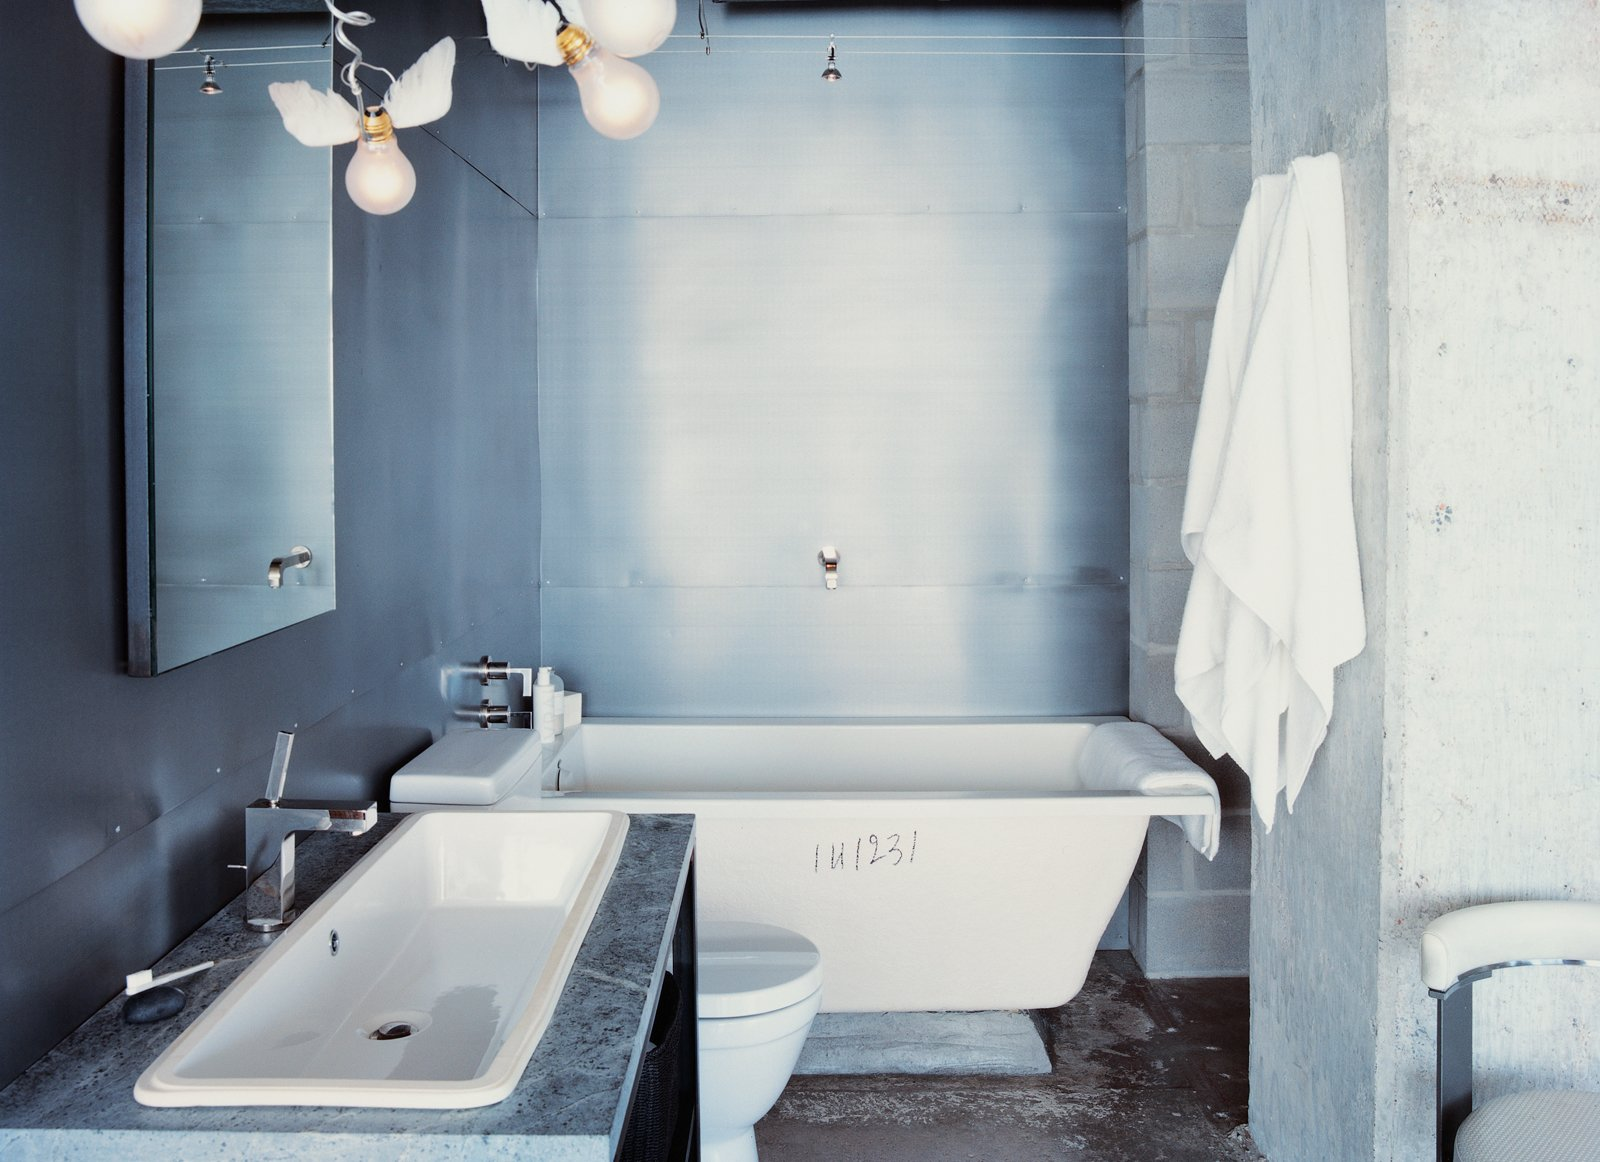 Bath Room, Freestanding Tub, Ceiling Lighting, Drop In Sink, and Concrete Wall Winged light bulbs, part of an Ingo Maurer fixture, bring levity to Hill's bathroom. The space features a zinc wall by Houston metalworker George Sacaris, who also did the bathroom and kitchen cabinets.  Photo 6 of 10 in 10 Ideas For the Minimalist Bathroom of Your Dreams from Stripped Ease